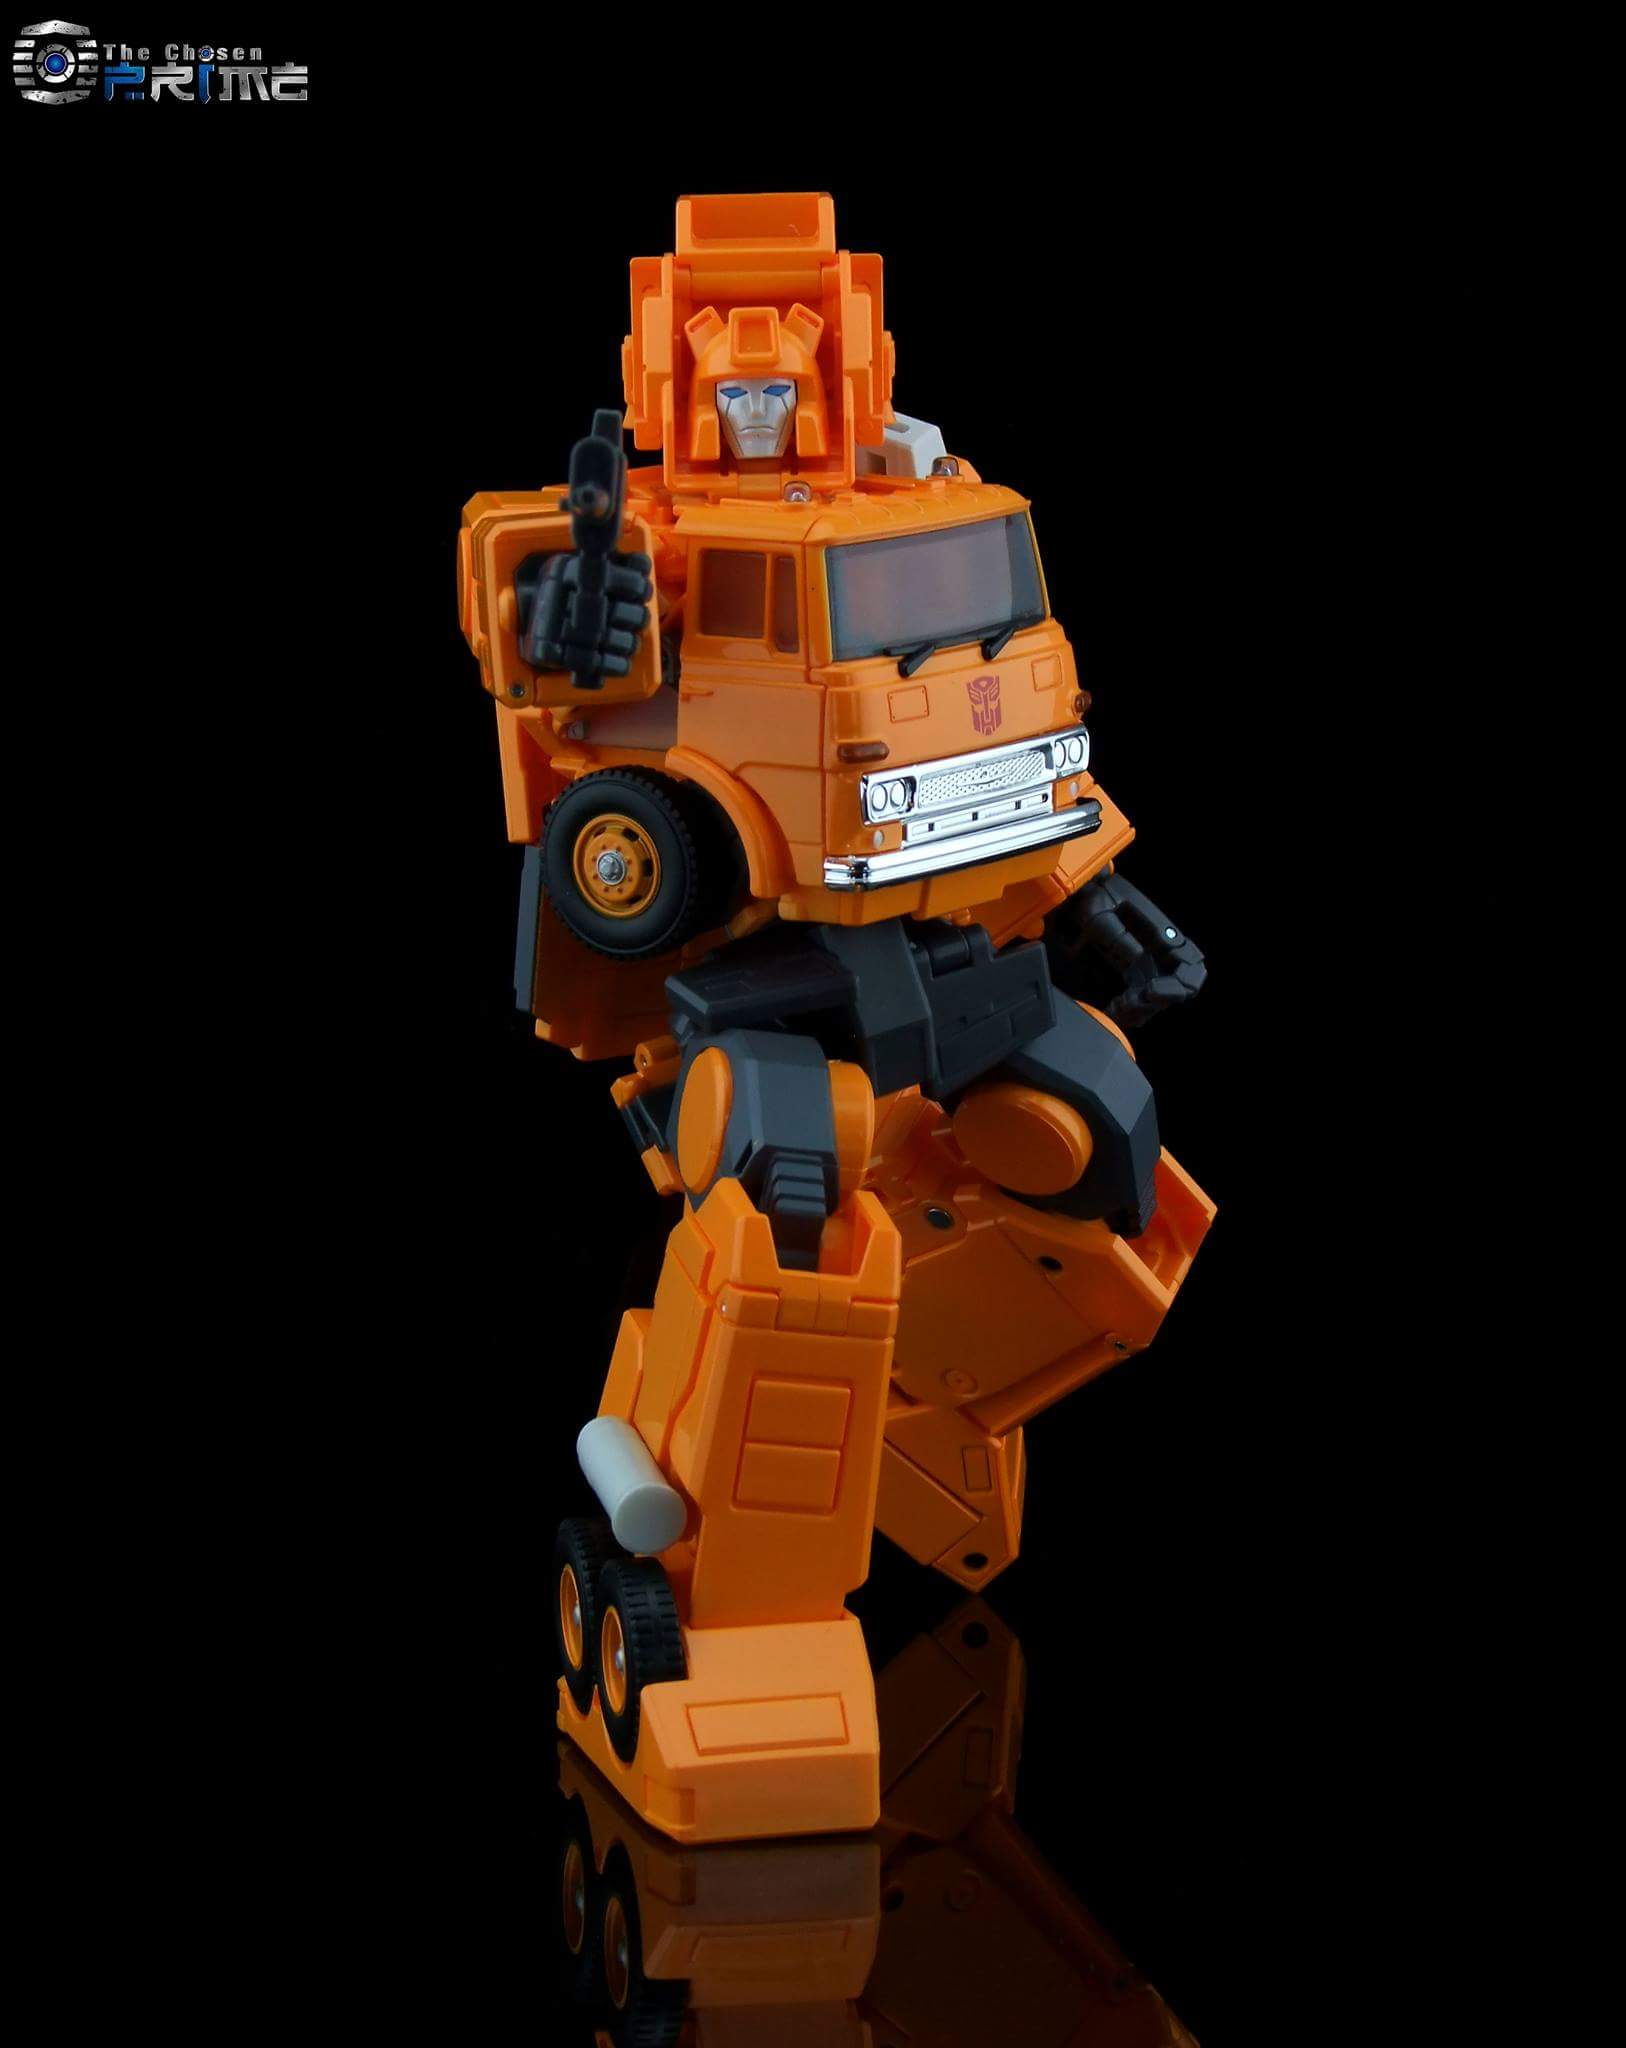 [Masterpiece] MP-35 Grapple/Grappin 7edYbsx9